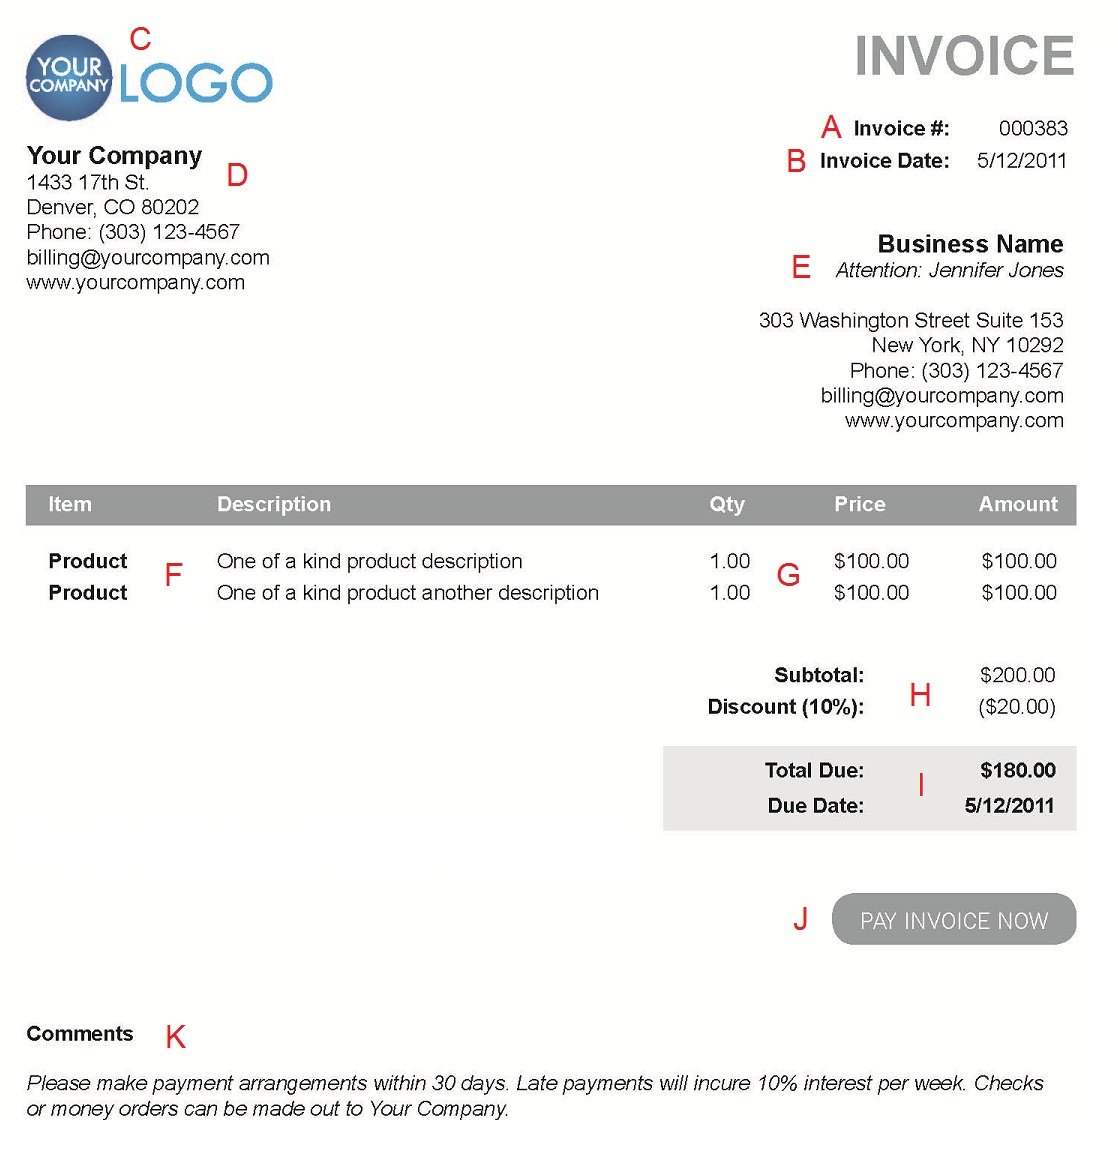 Floobydustus  Personable The  Different Sections Of An Electronic Payment Invoice With Hot A  With Beauteous Find New Car Invoice Price Also Simple Invoice Template Uk In Addition Computer Service Invoice Template And Australian Invoice Template As Well As Invoice Search Additionally Travel Agency Invoice Format From Paysimplecom With Floobydustus  Hot The  Different Sections Of An Electronic Payment Invoice With Beauteous A  And Personable Find New Car Invoice Price Also Simple Invoice Template Uk In Addition Computer Service Invoice Template From Paysimplecom